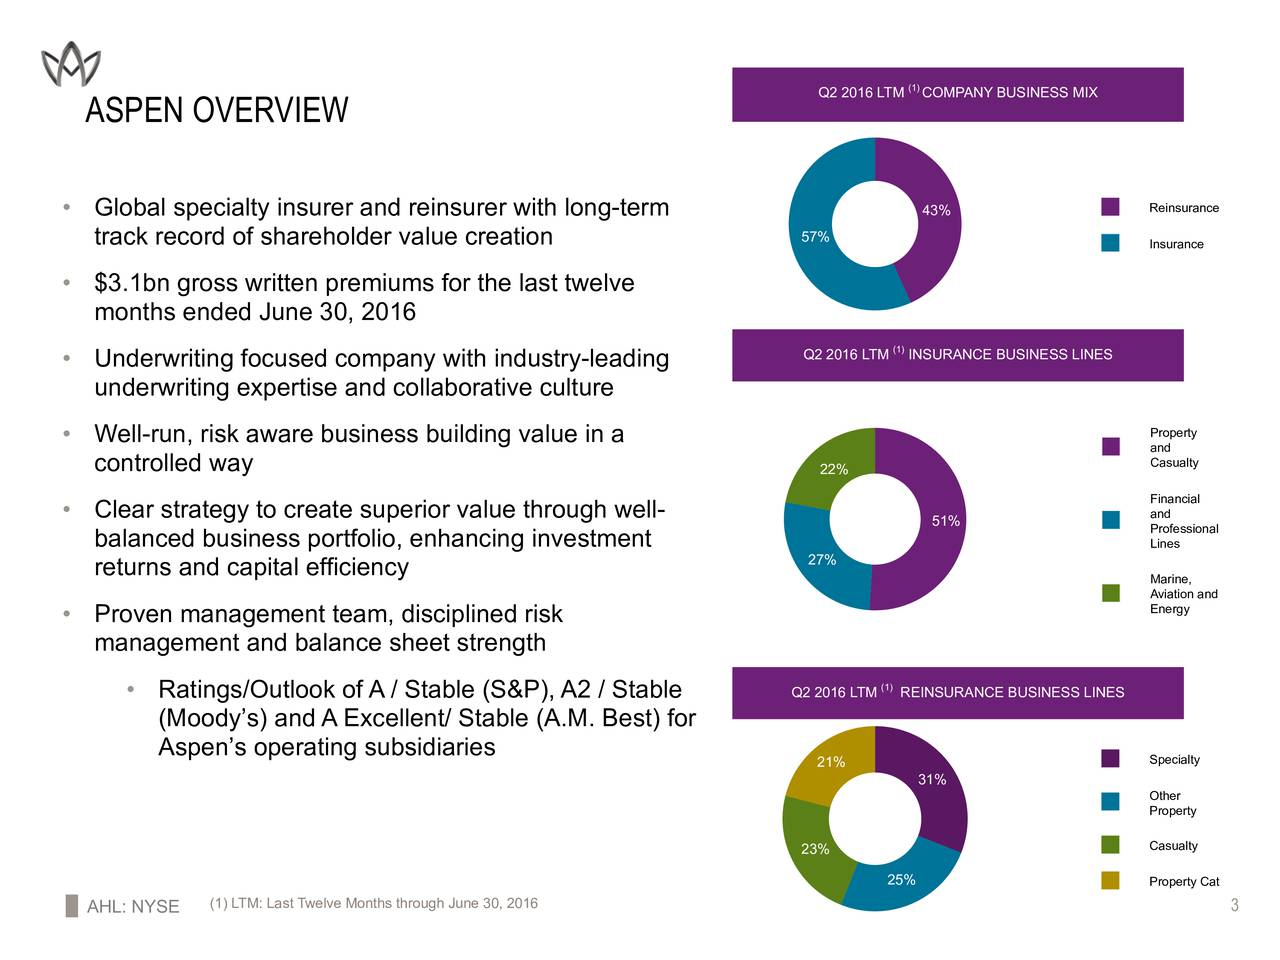 Q2 2016 LTM COMPANY BUSINESS MIX ASPEN OVERVIEW Reinsurance Global specialty insurer and reinsurer with long-term 43% track record of shareholder value creation 57% Insurance $3.1bn gross written premiums for the last twelve months ended June30, 2016 Underwriting focused company with industry-leading Q2 2016 LTM(INSURANCE BUSINESS LINES underwriting expertise and collaborative culture Property Well-run, risk aware business building value in a and controlled way Casualty 22% Financial Clear strategy to create superior value through well- and 51% Professional balanced business portfolio, enhancing investment Lines 27% returns and capital efficiency Marine, Aviation and Proven management team, disciplined risk Energy management and balance sheet strength Ratings/Outlook of A / Stable (S&P), A2 / Stable Q2 2016 LTM REINSURANCE BUSINESS LINES (Moodys) and A Excellent/ Stable (A.M. Best) for Aspens operating subsidiaries 21% Specialty 31% Other Property 23% Casualty 25% Property Cat AHL: NYSE (1) LTM: Last Twelve Months through June30, 2016 3